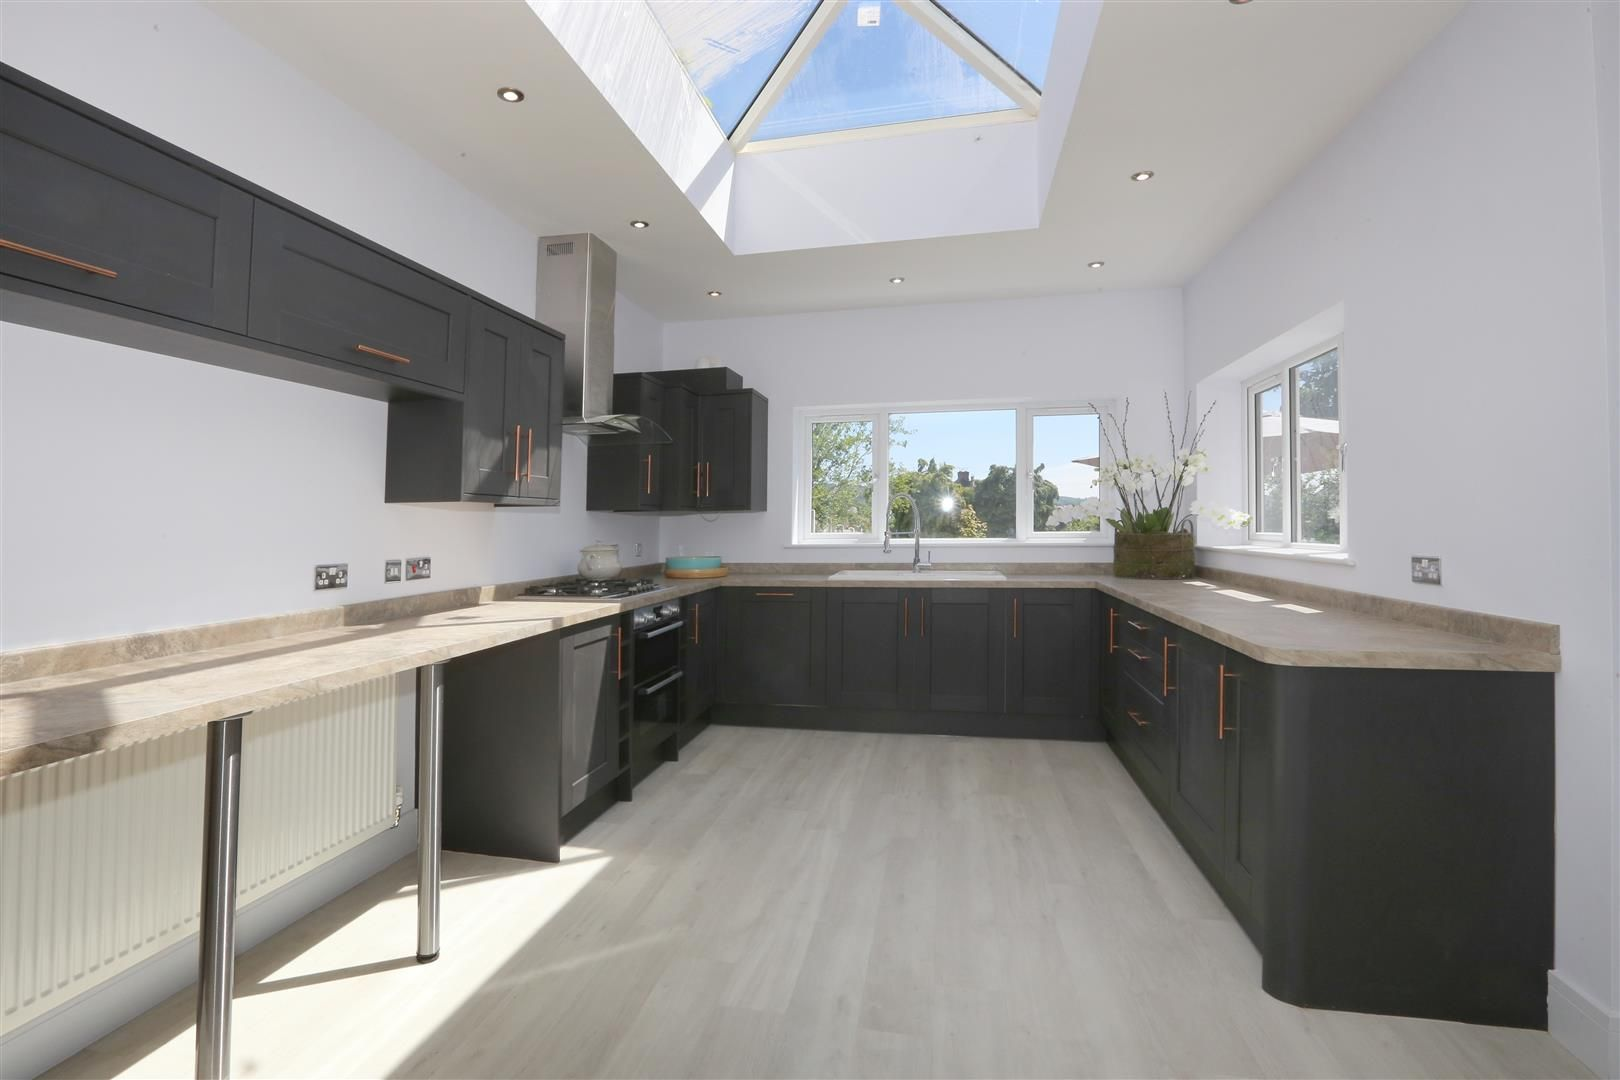 4 bed detached for sale in Hagley 8